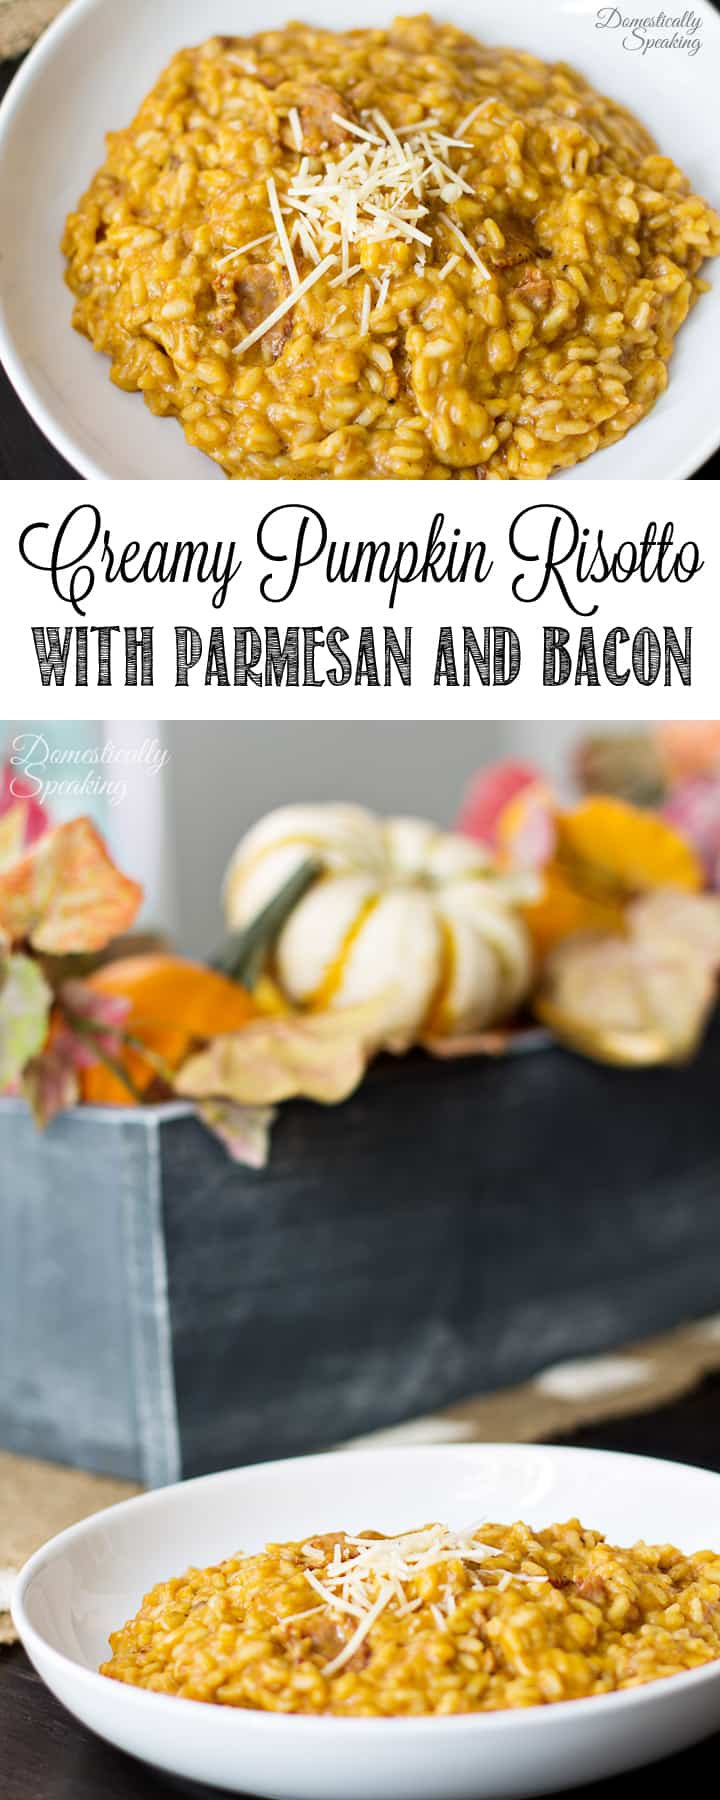 Creamy Pumpkin Risotto with Parmesan and Applewood Bacon